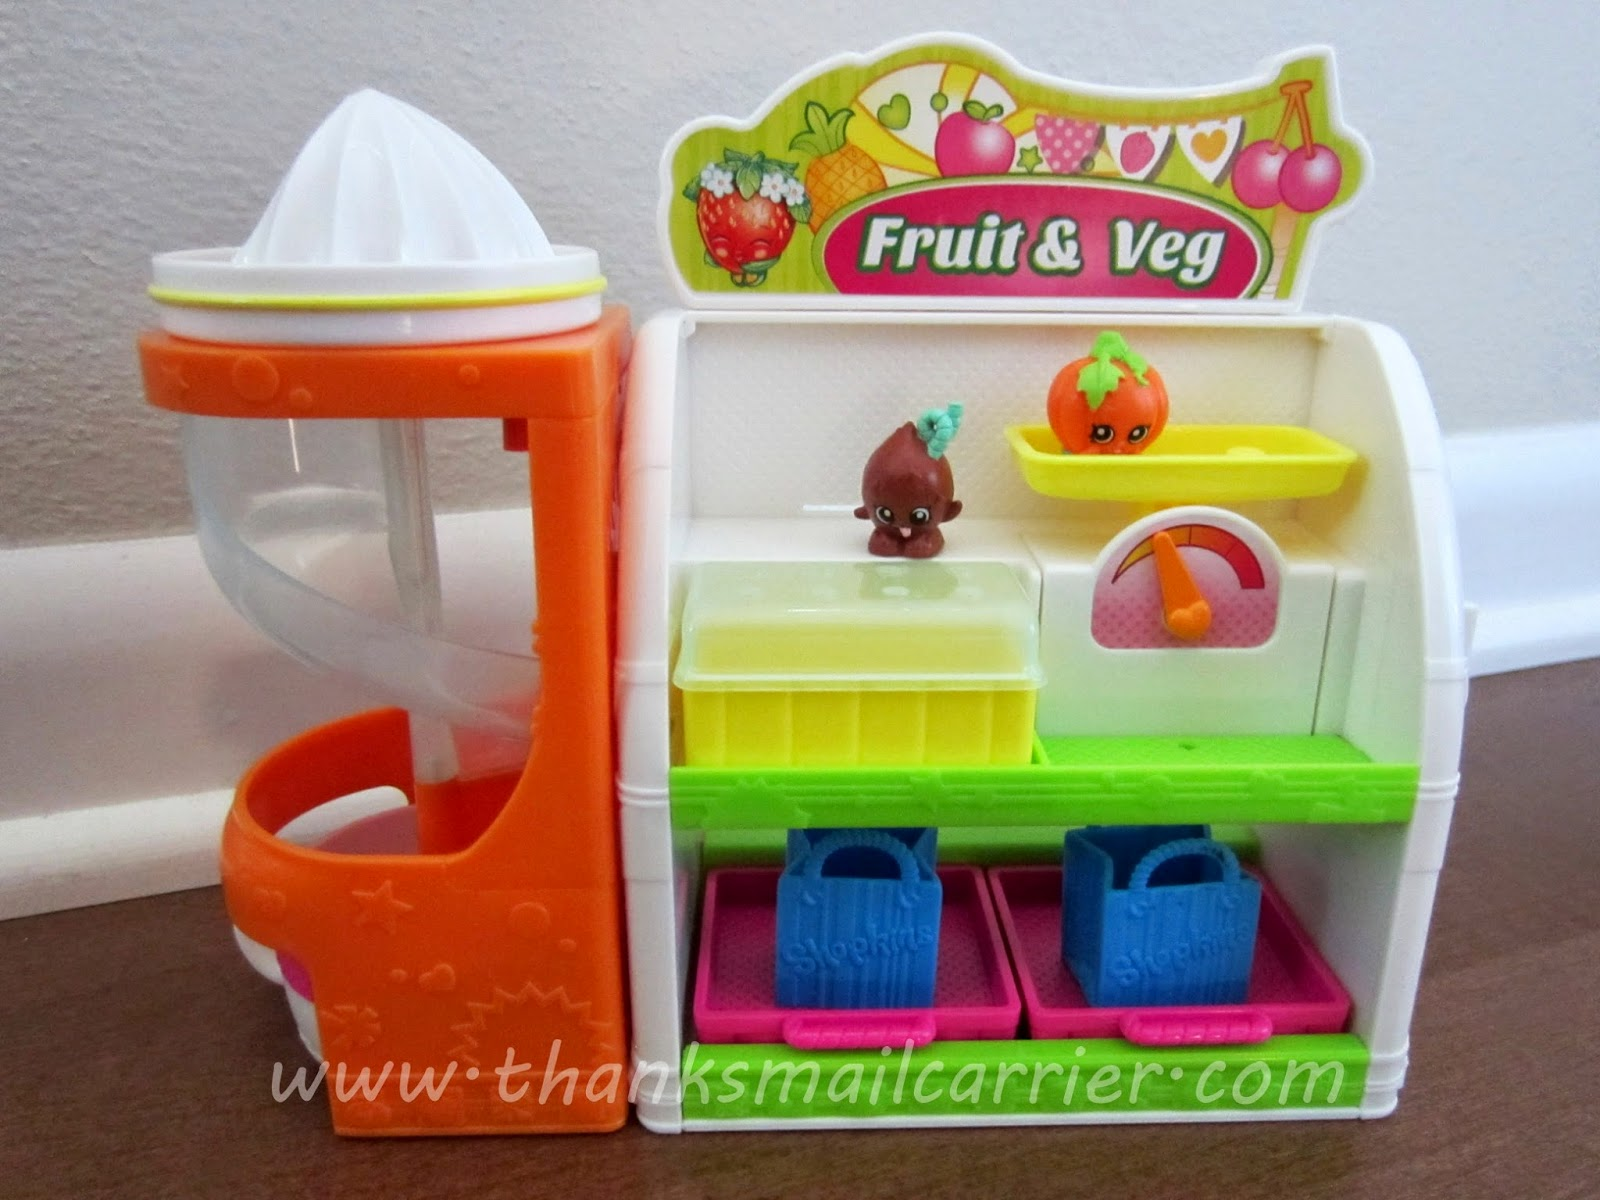 Shopkins Fruit & Veg